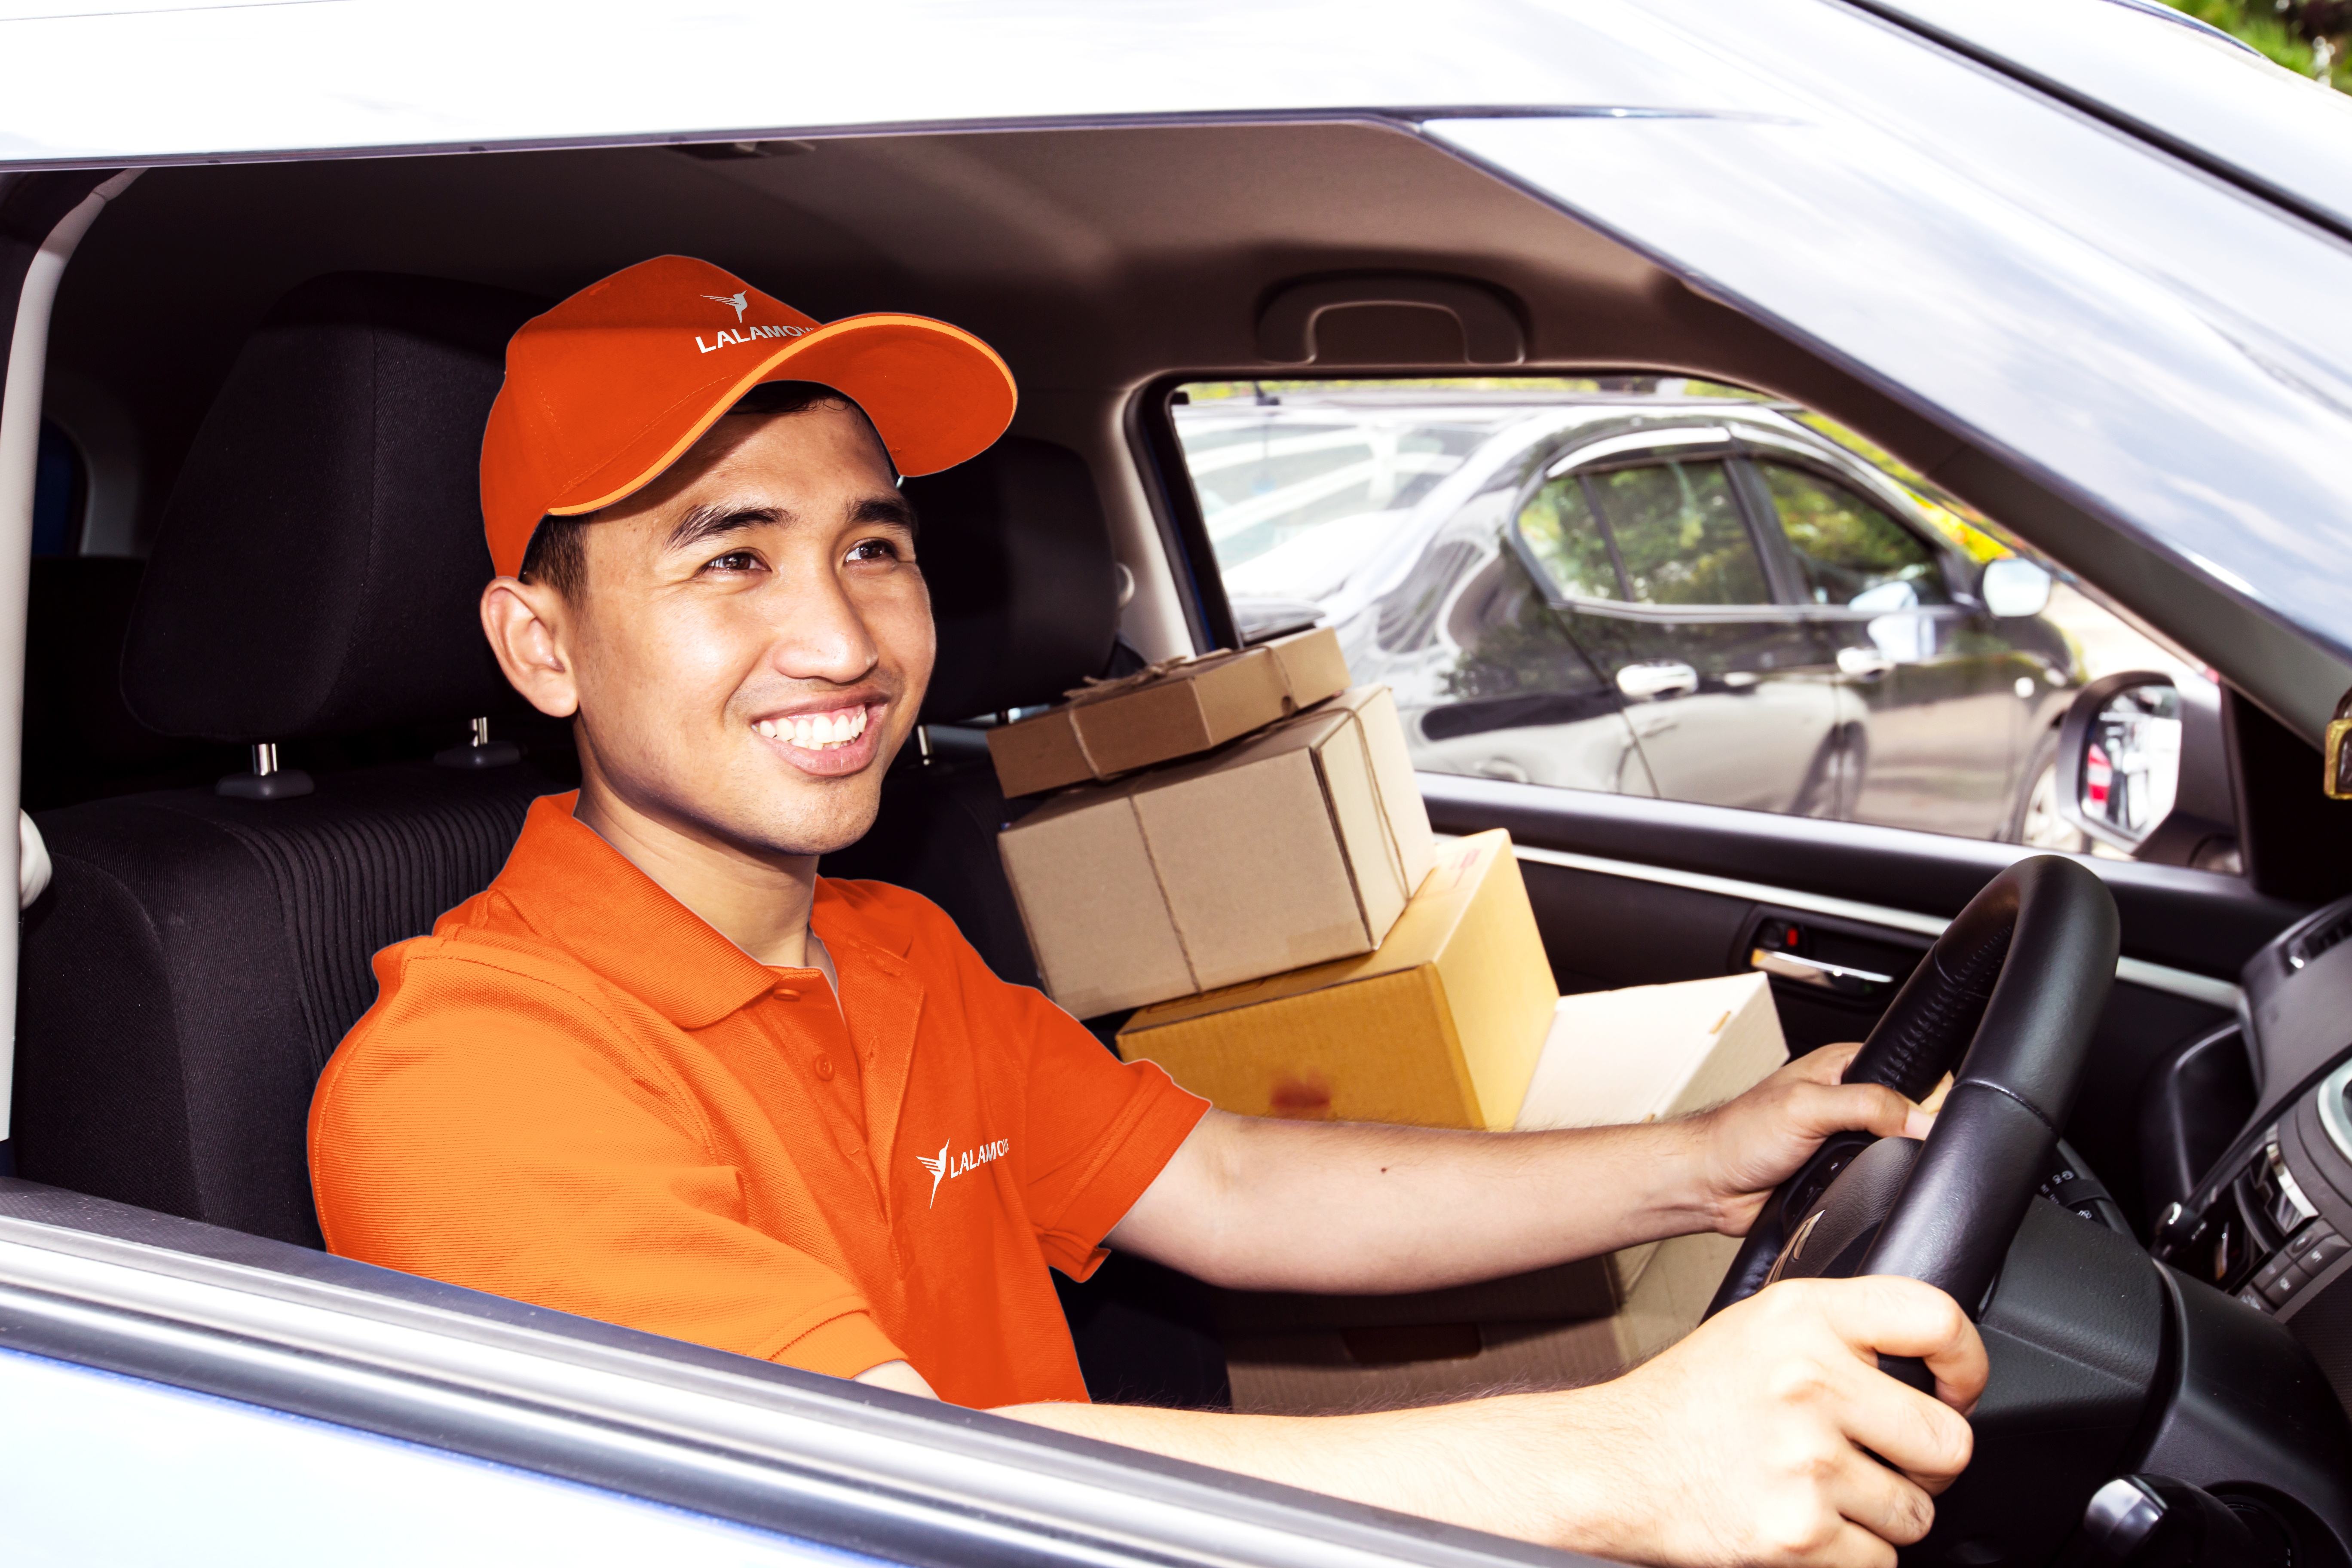 Lalamove delivers furnitures and bulky boxes